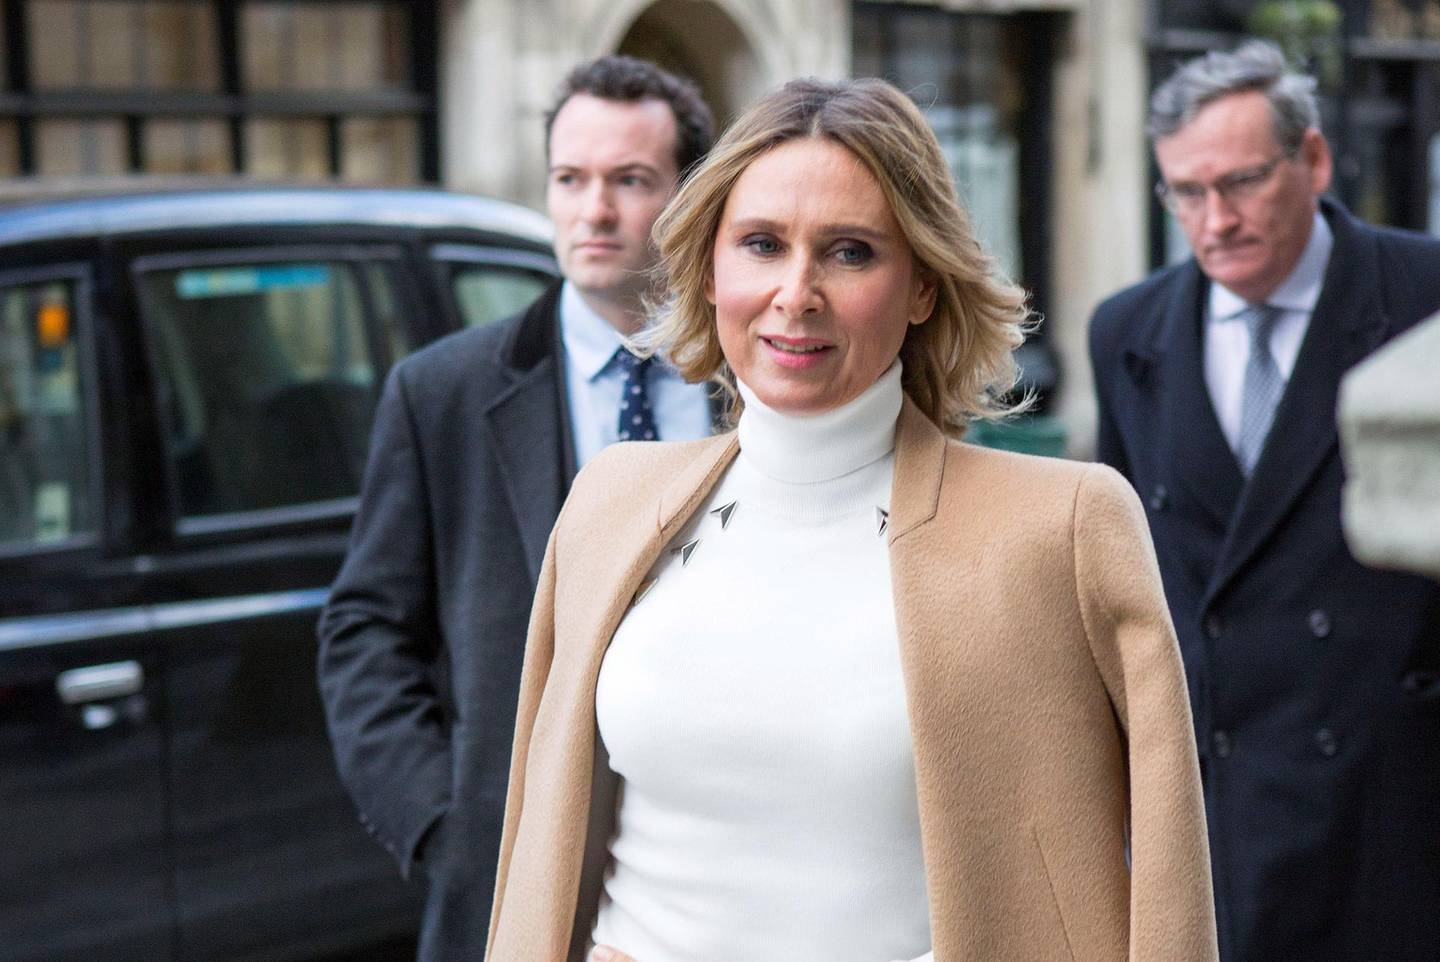 Tatiana Akhmedova arrives at court which is considering legal issues in the divorce case against Russian billionaire businessman Farkhad Akhmedov, at a Court of Appeal hearing at the Royal Courts of Justice in London Thursday Feb. 1, 2018.  Akhmedova was awarded Pounds 453 million (US 645 million dlrs) in divorce settlement, but according to her legal team no payment has yet been made. (Rick Findler/PA via AP)